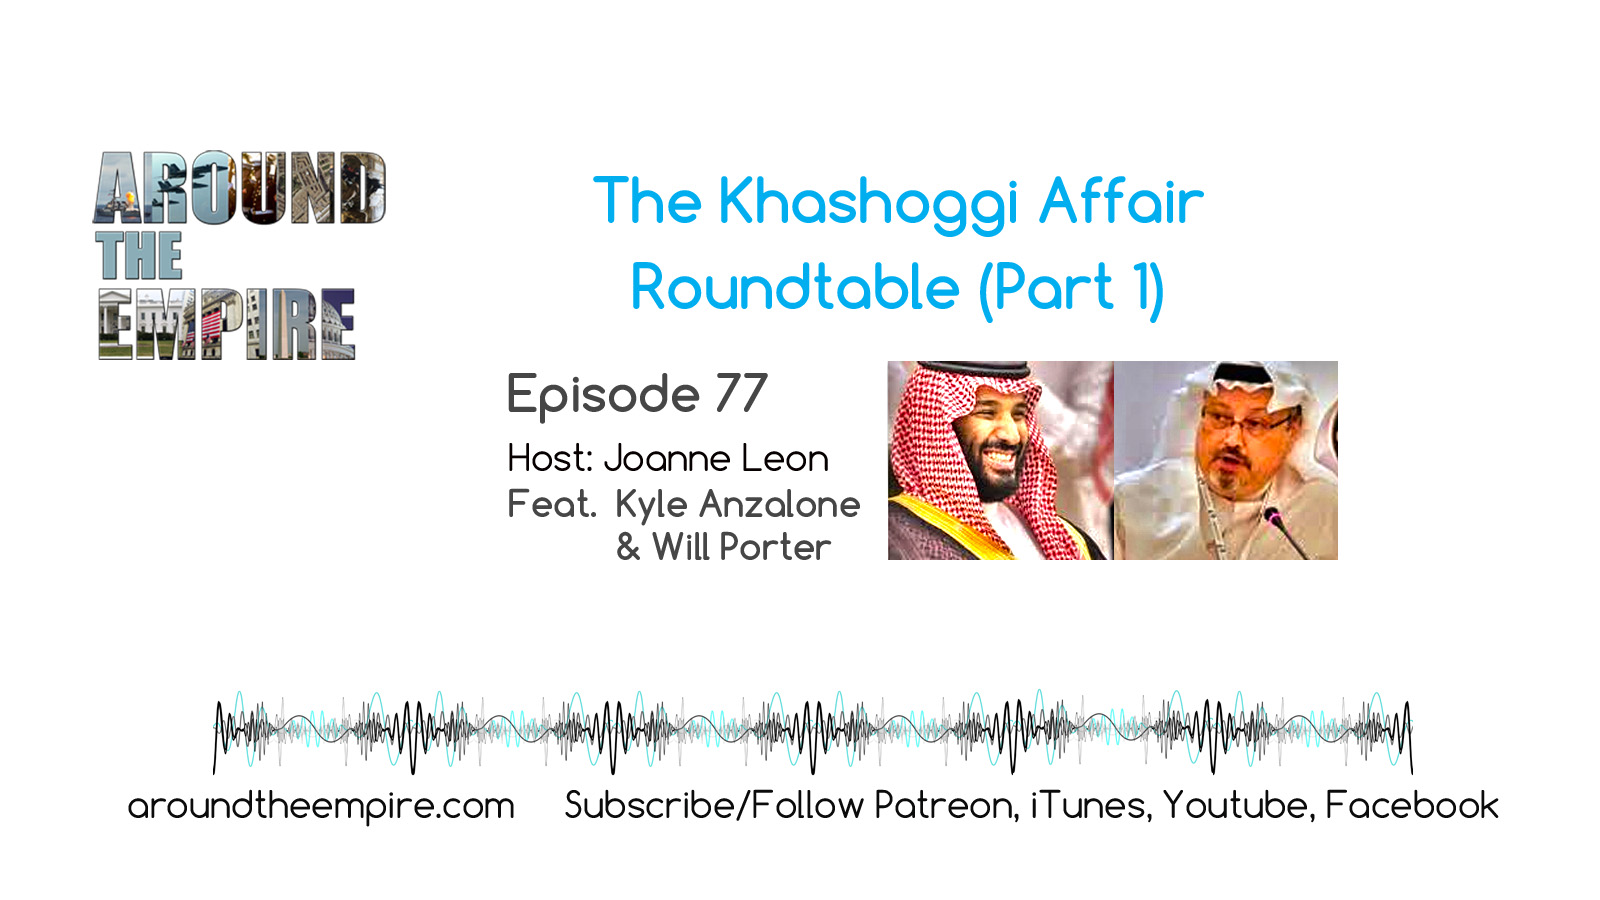 Ep 77 The Khashoggi Affair - Part 1